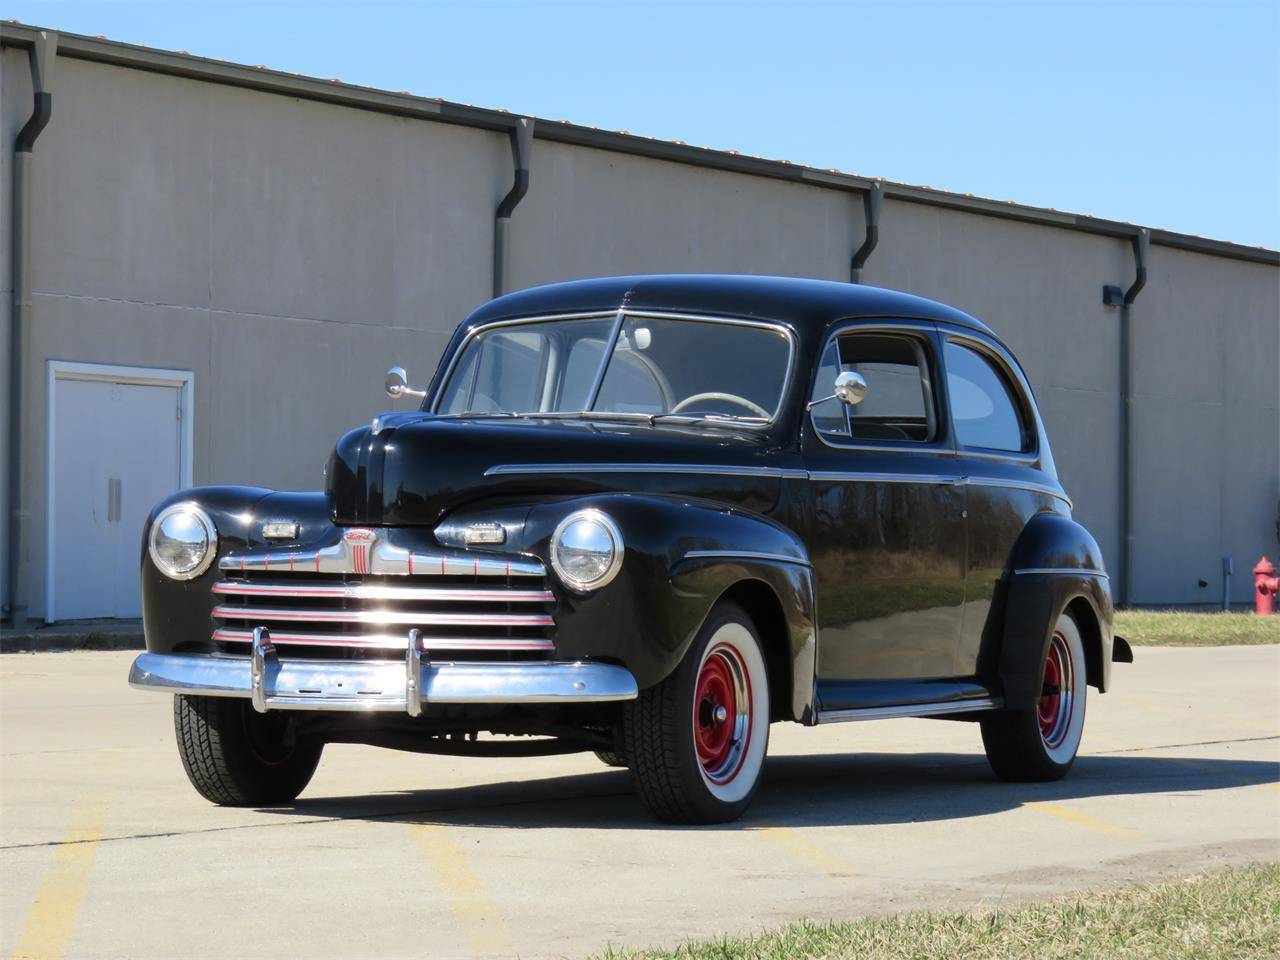 Large Picture of Classic '46 Deluxe located in Kokomo Indiana Auction Vehicle Offered by Earlywine Auctions - MY9Z